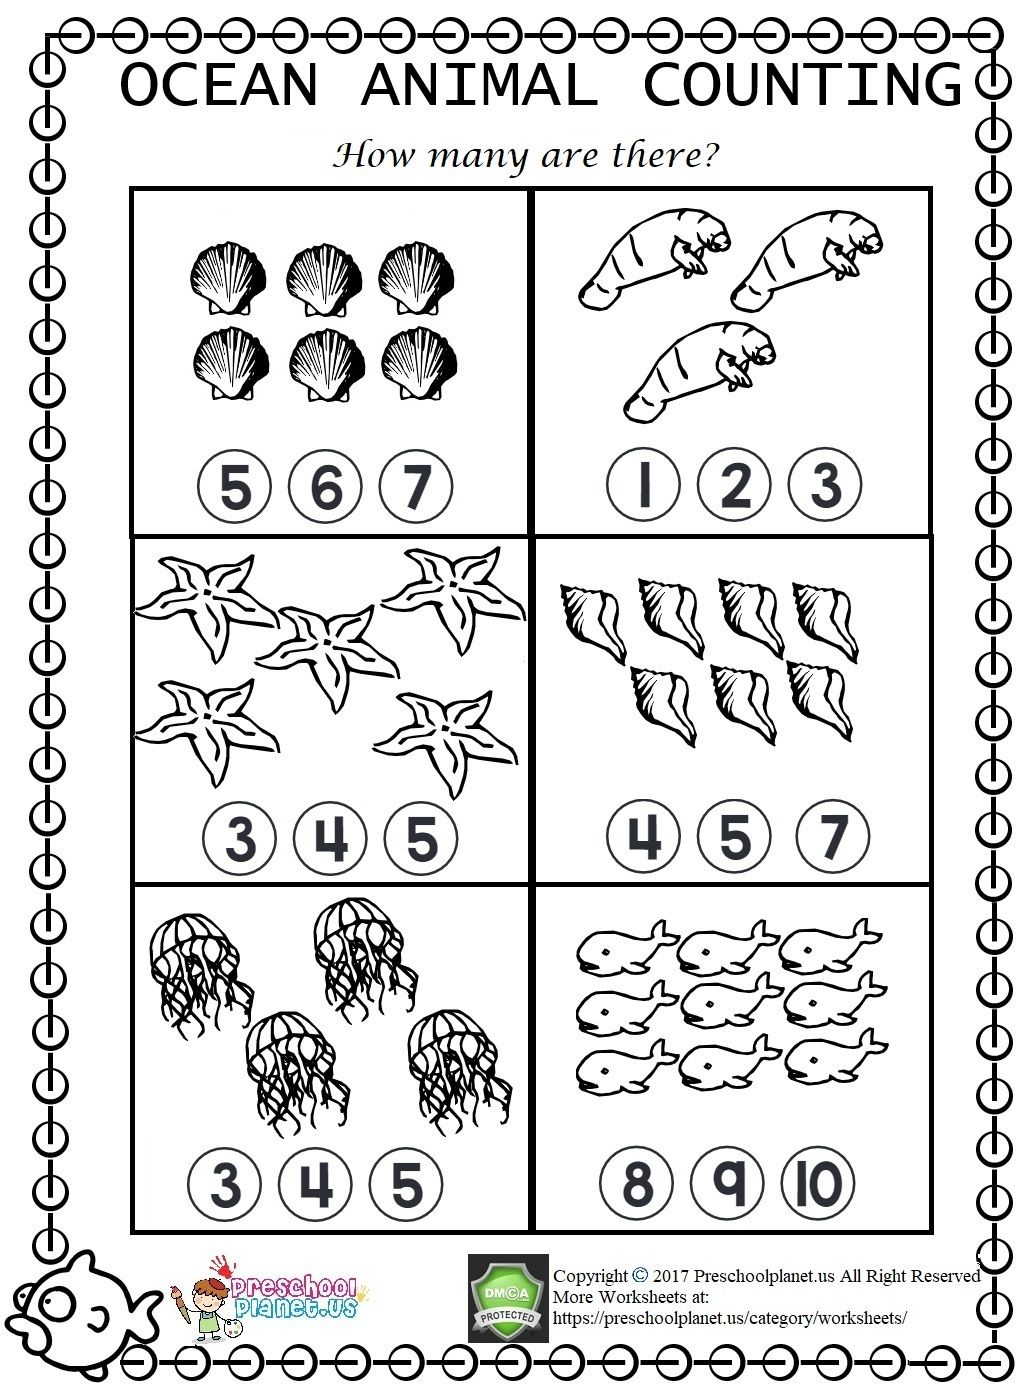 Worksheet On Animal World